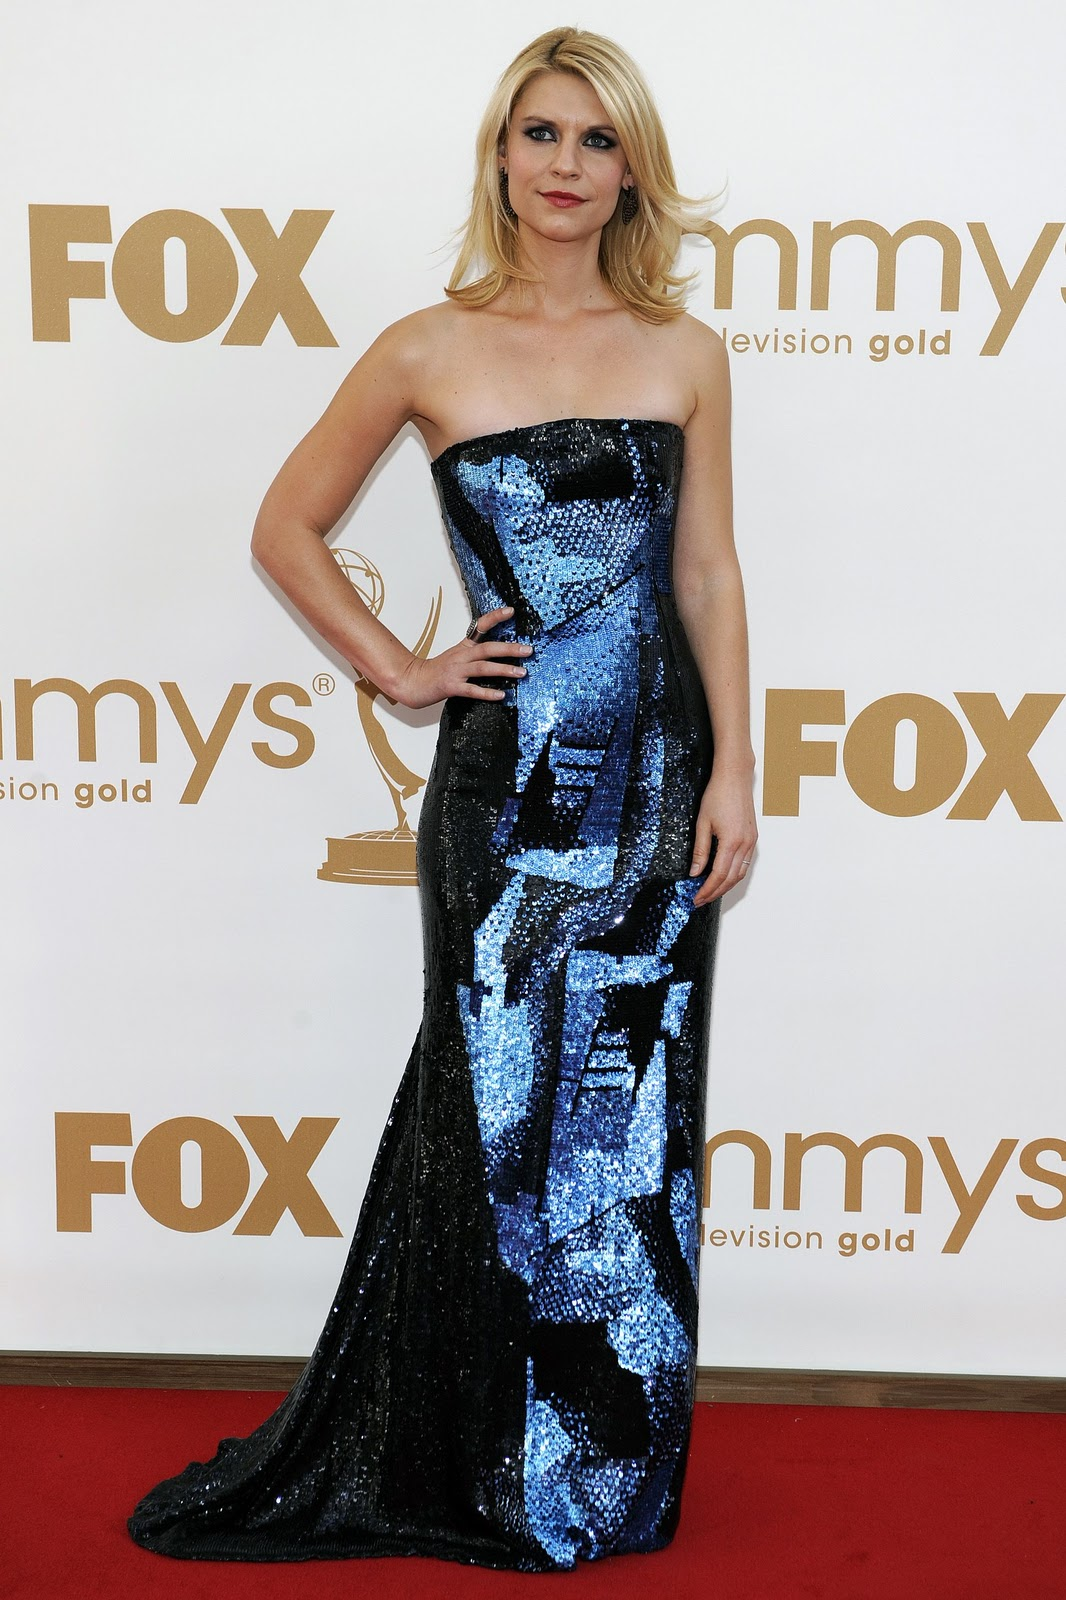 http://3.bp.blogspot.com/-CPj__tdSs_M/TnetwN11ypI/AAAAAAAABRc/Yj2DEoa_2VA/s1600/CU-Claire+Danes+arrives+at+the+63rd+Primetime+Emmy+Awards-04.jpg